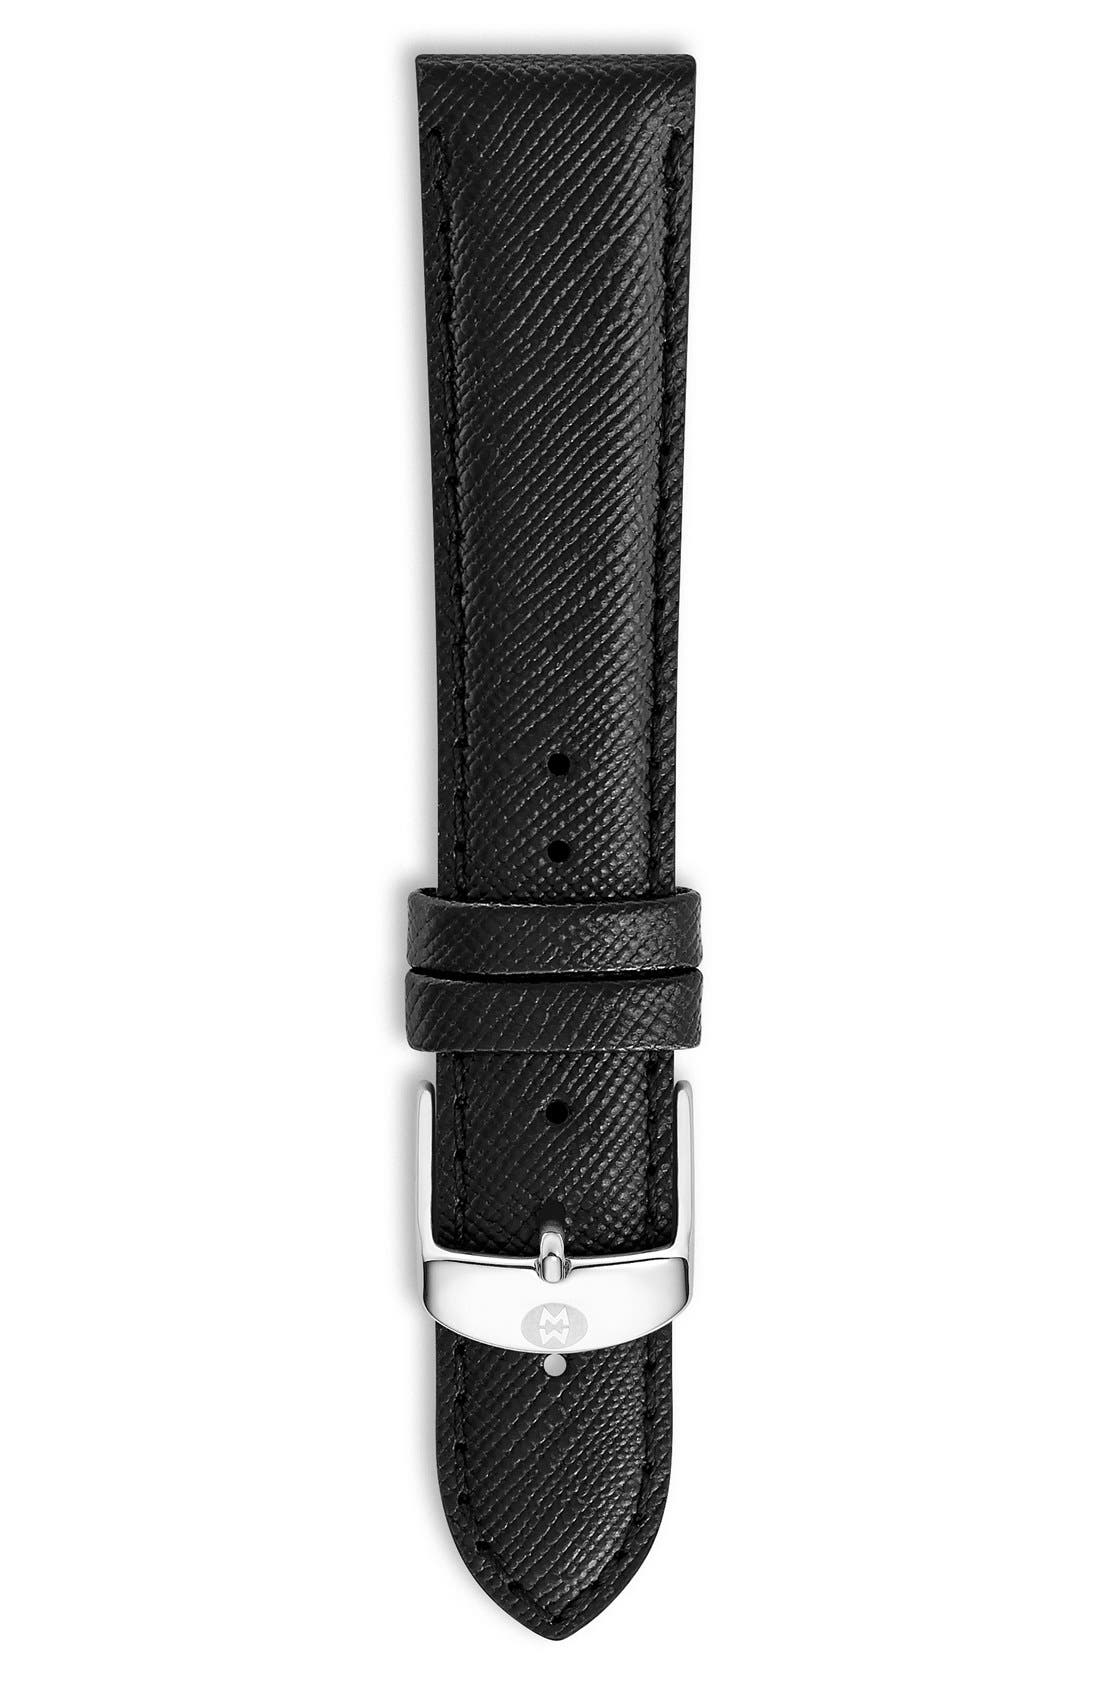 MICHELE 18mm Saffiano Leather Watch Strap